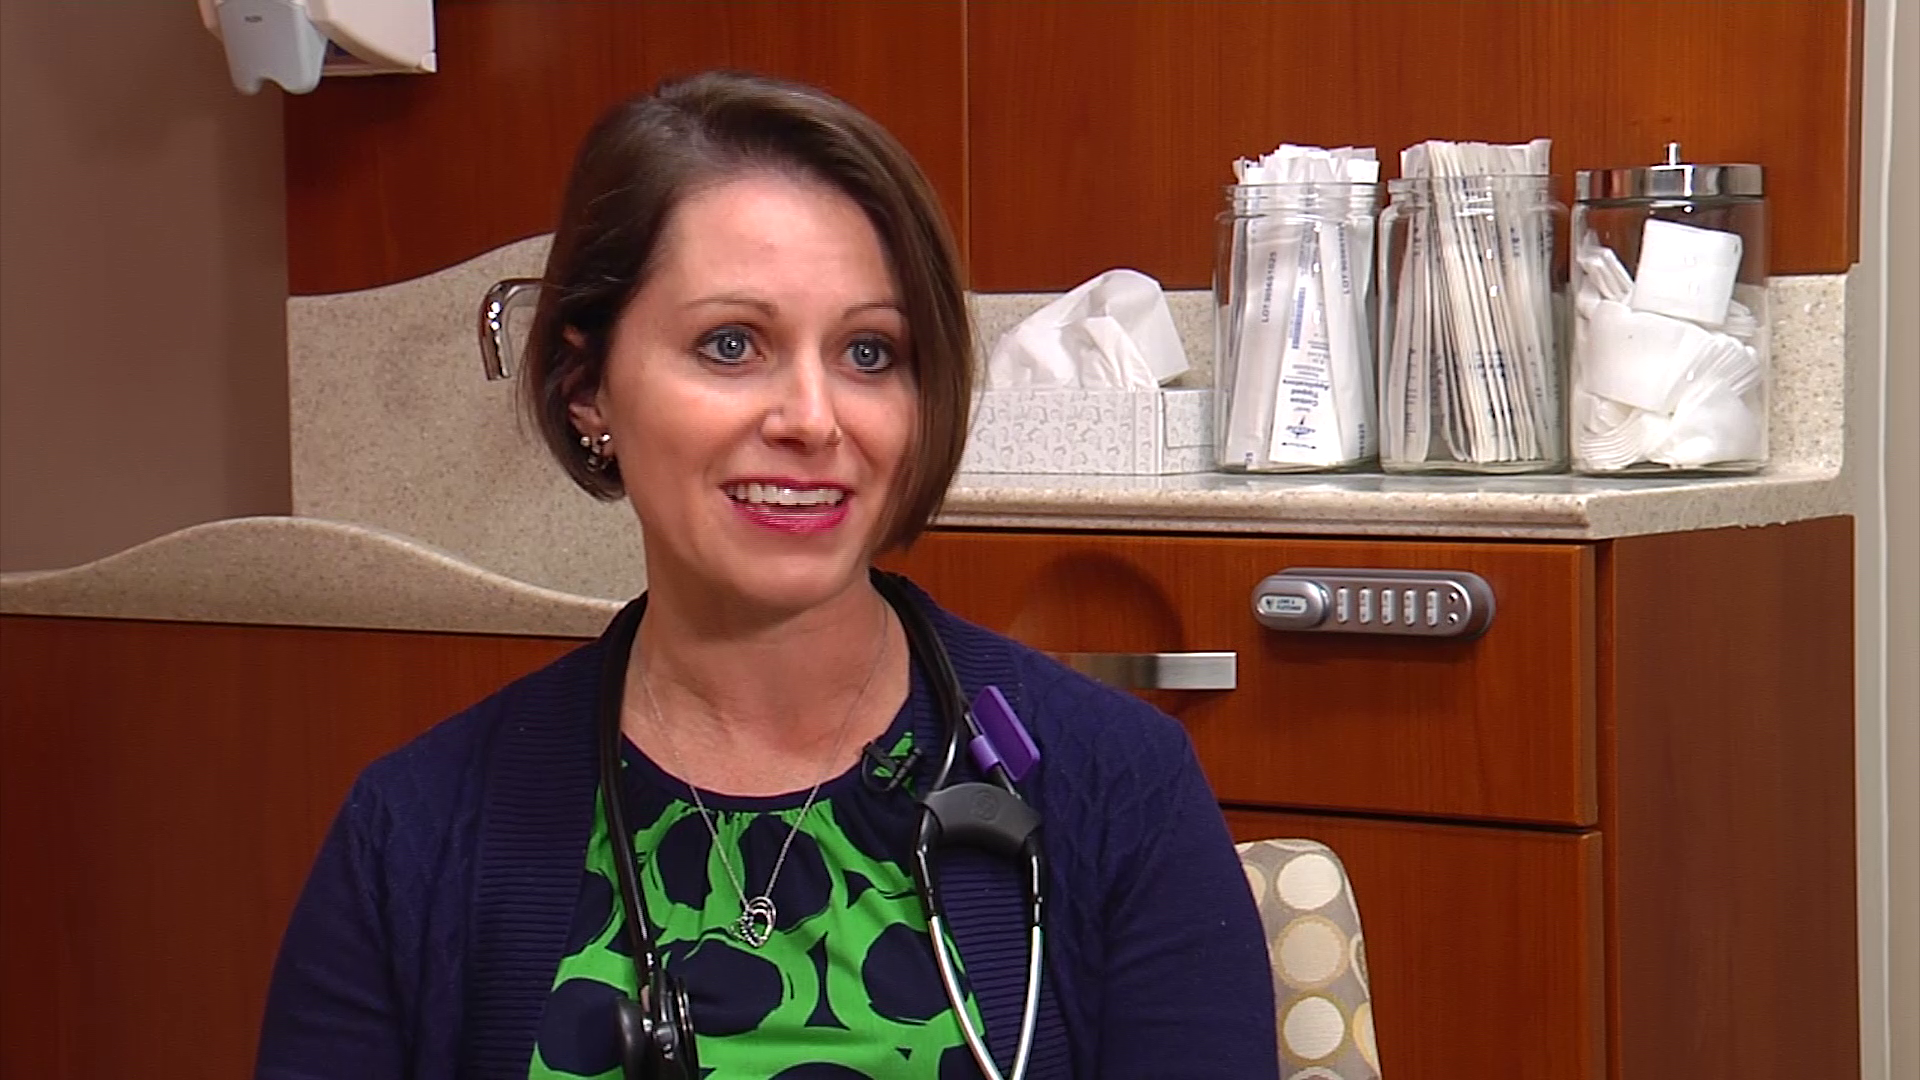 Dr. Cavanagh talks about her practice